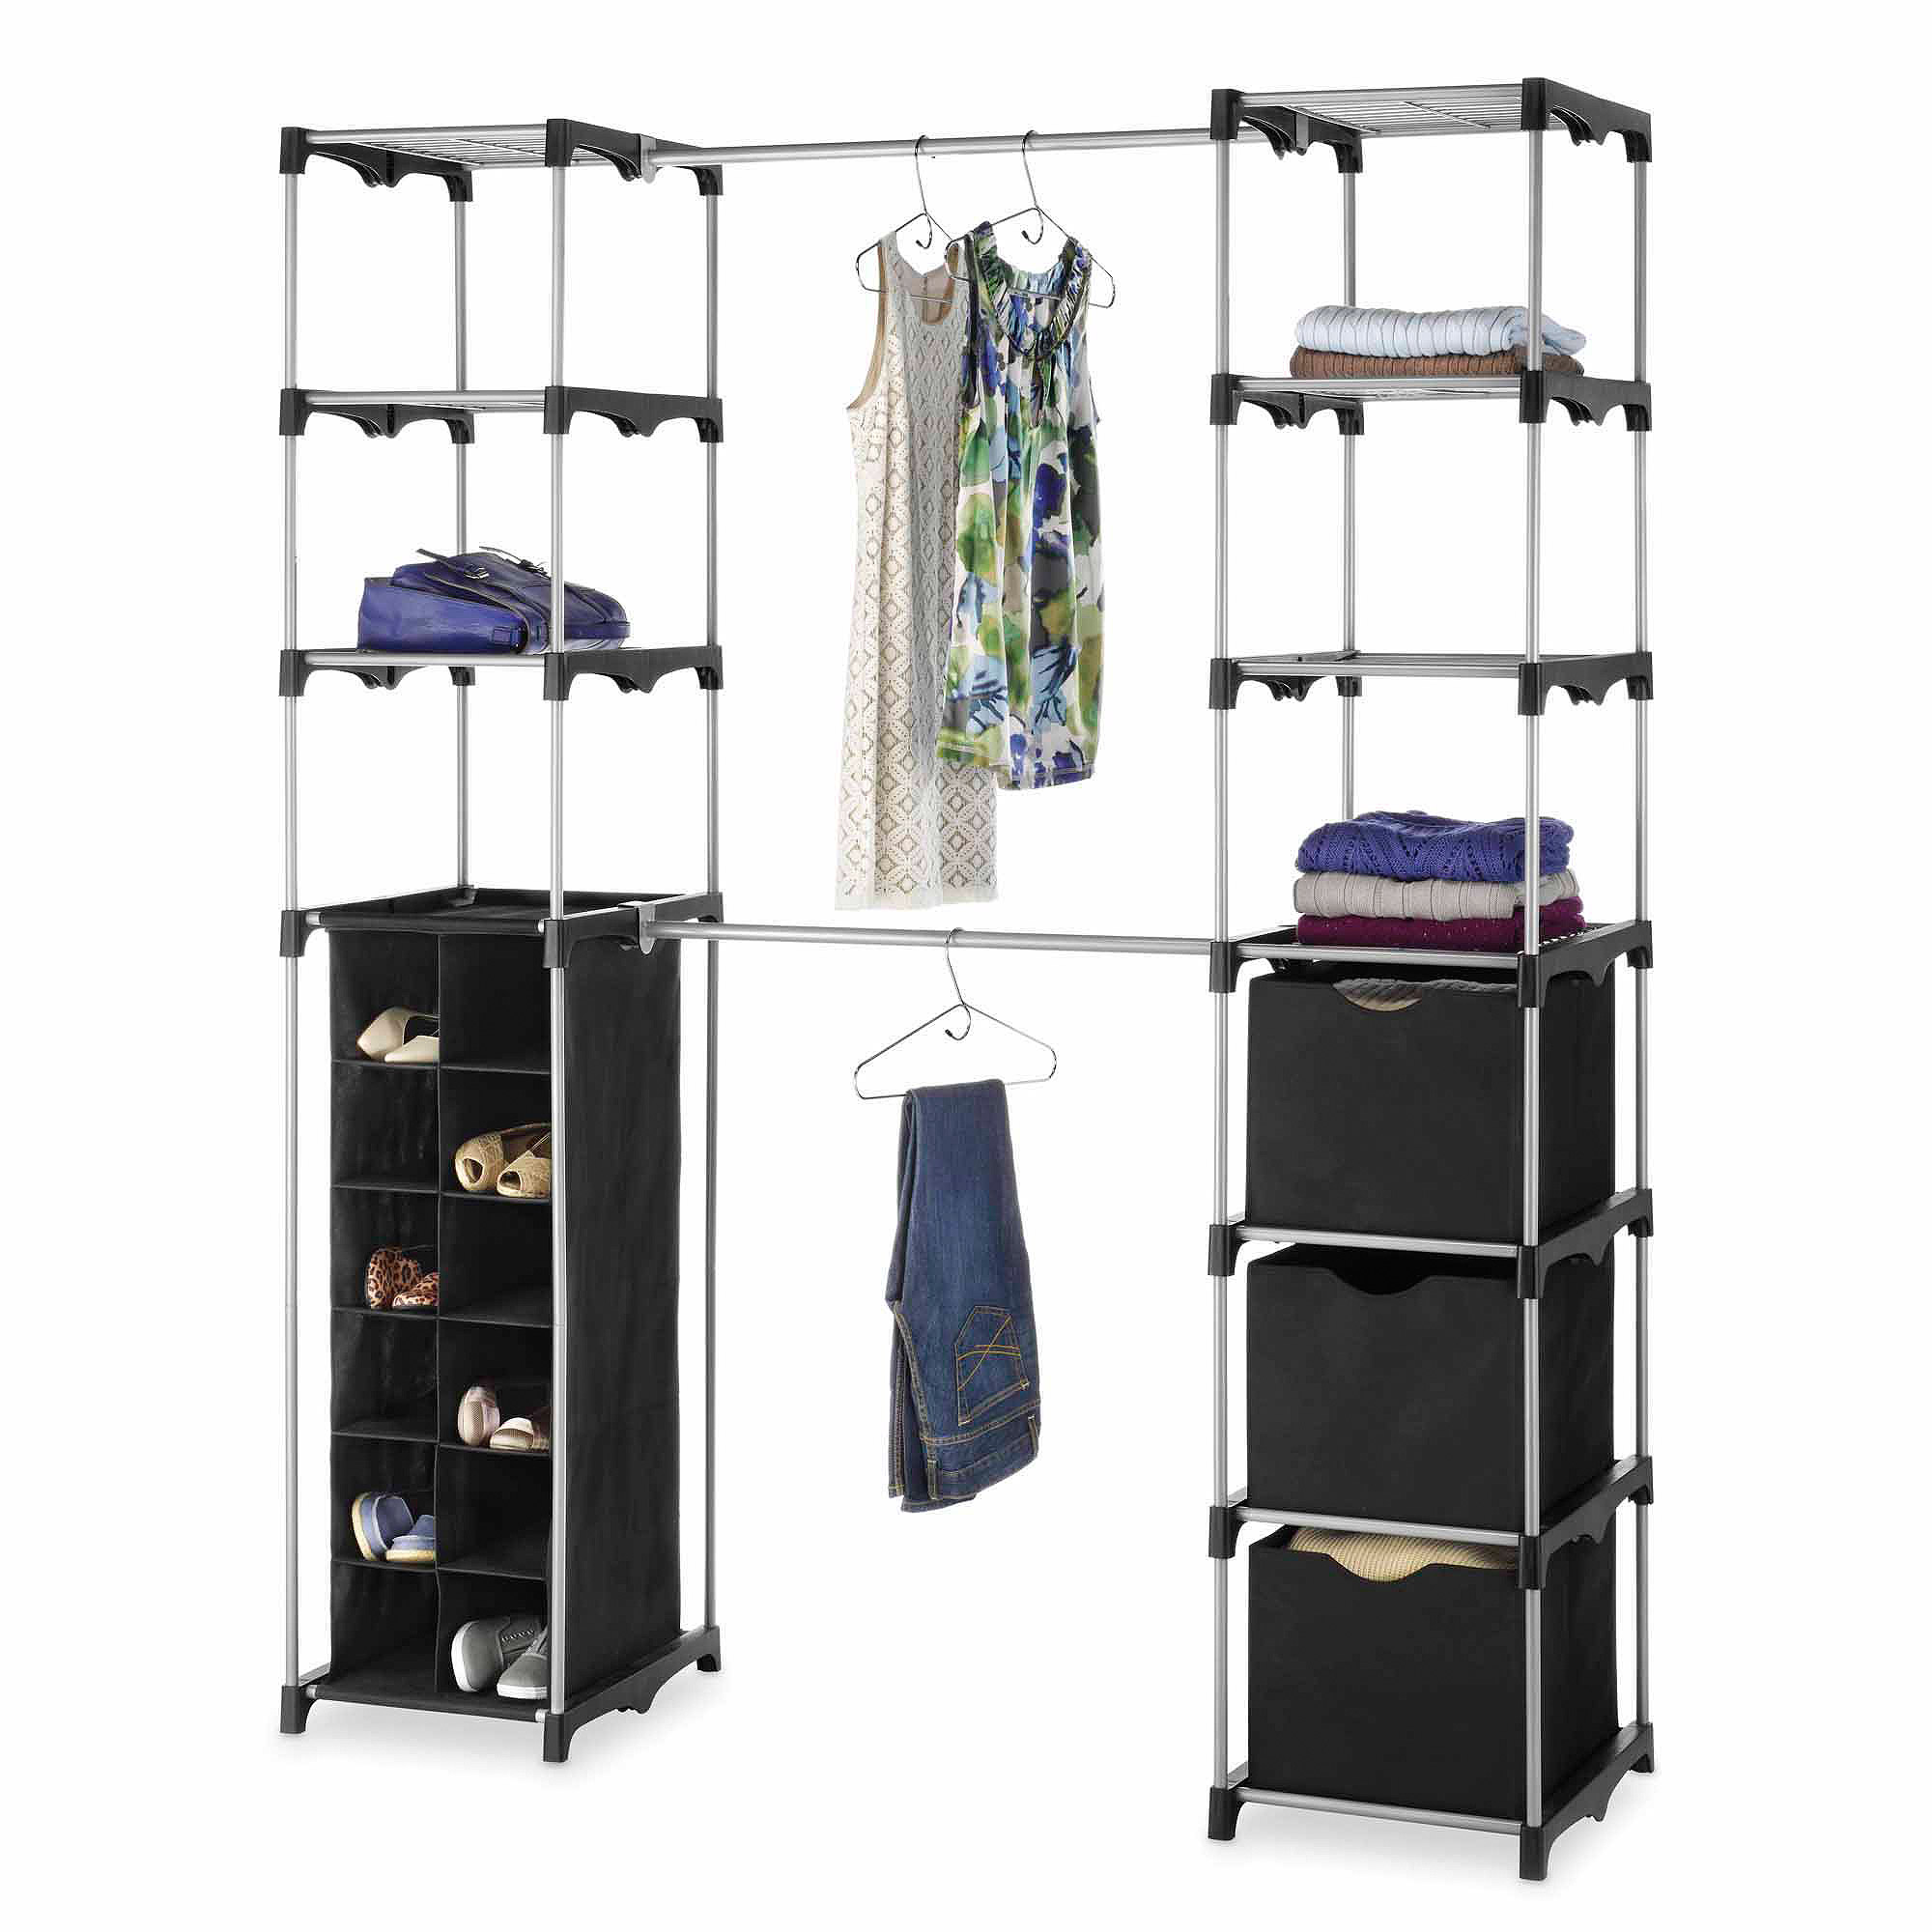 ikea shelving spaces walmart depot closet unit pull door the home storage systems out shelves over shelf pan for organizer rack wire organizers cluttered pantry stand alone